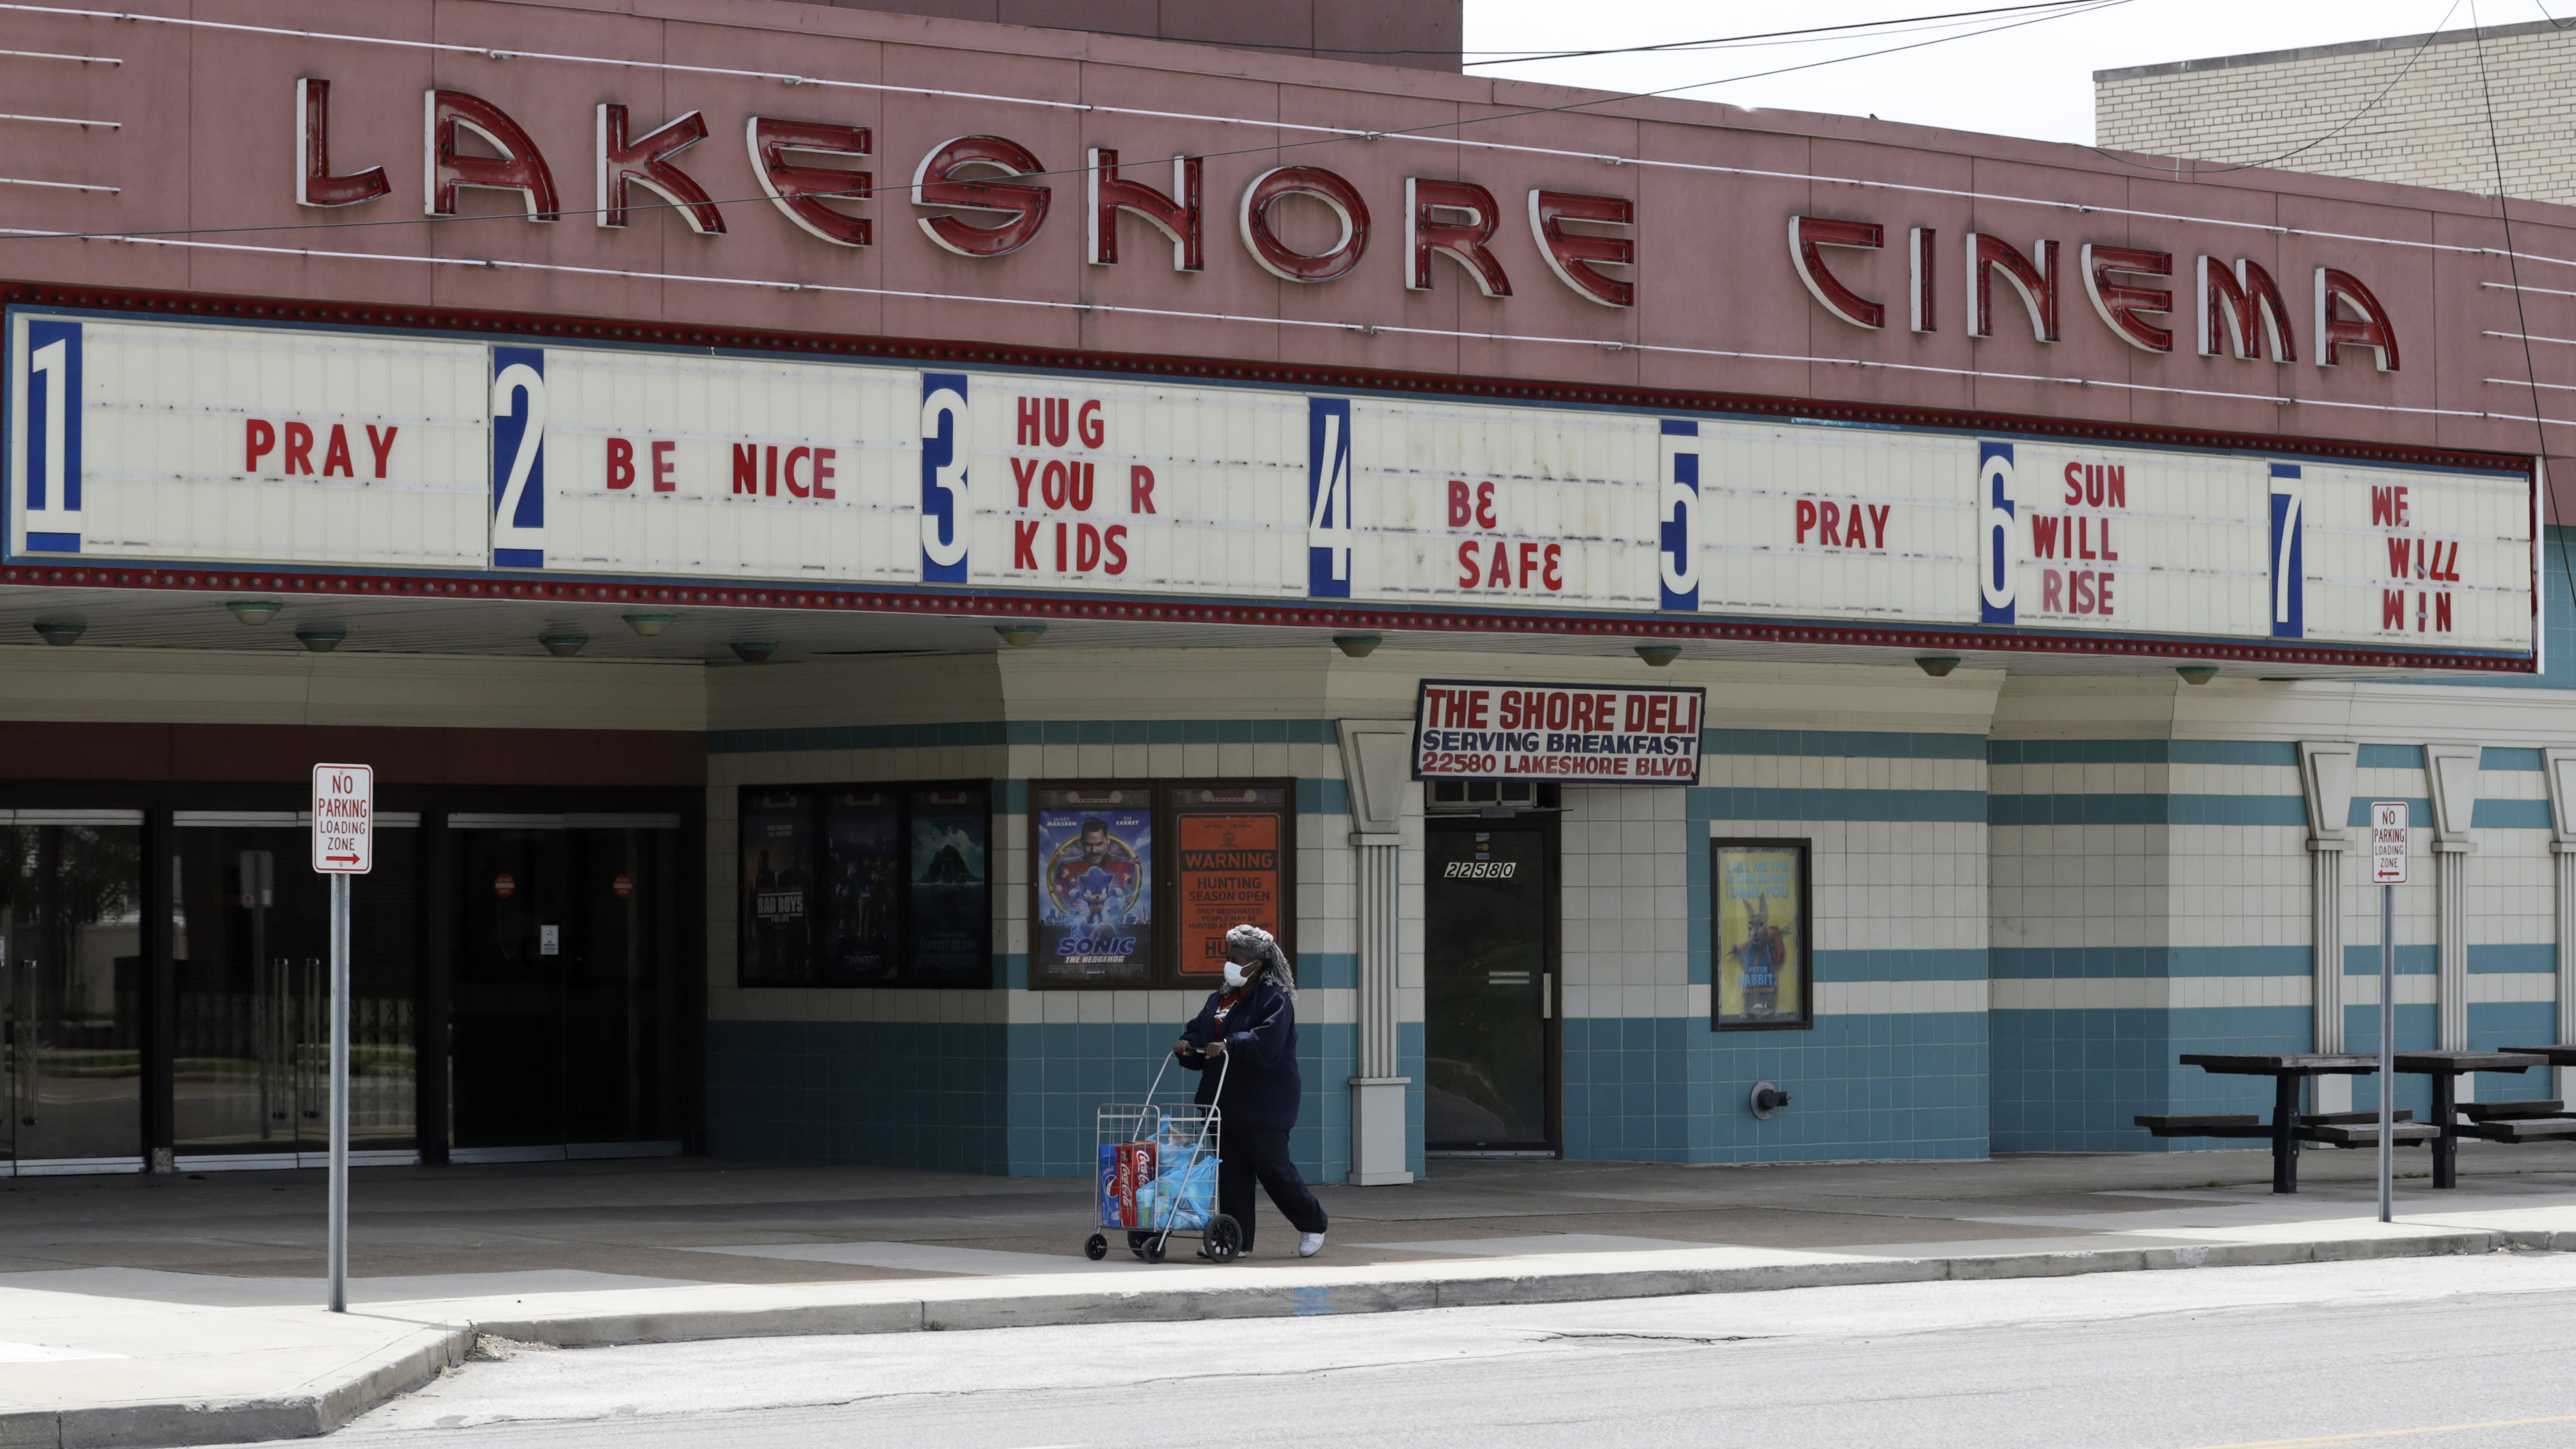 A woman wearing a mask walks with her groceries past a closed Lakeshore Cinema theatre, Wednesday, May 6, 2020, in Euclid, Ohio. With the economy paralyzed by business closures, the unemployment rate likely jumped to at least 16% — from just 4.4% in March — and employers cut a stunning 21 million or more jobs just in April, economists have forecast. (AP Photo/Tony Dejak)